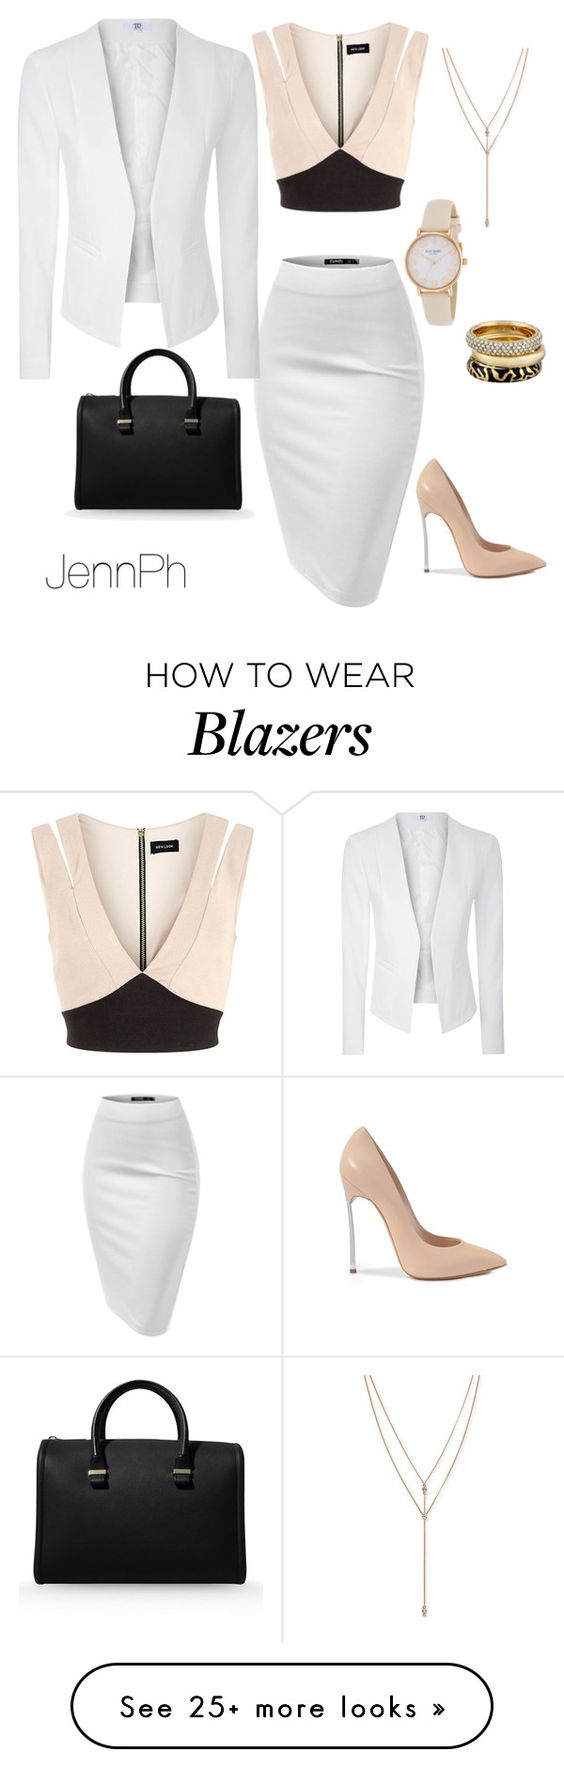 """""""Promotion"""" by simplicityaruba on Polyvore featuring Casadei, True Decadence, Victoria Beckham, Michael Kors, Vince Camuto and Kate Spade"""